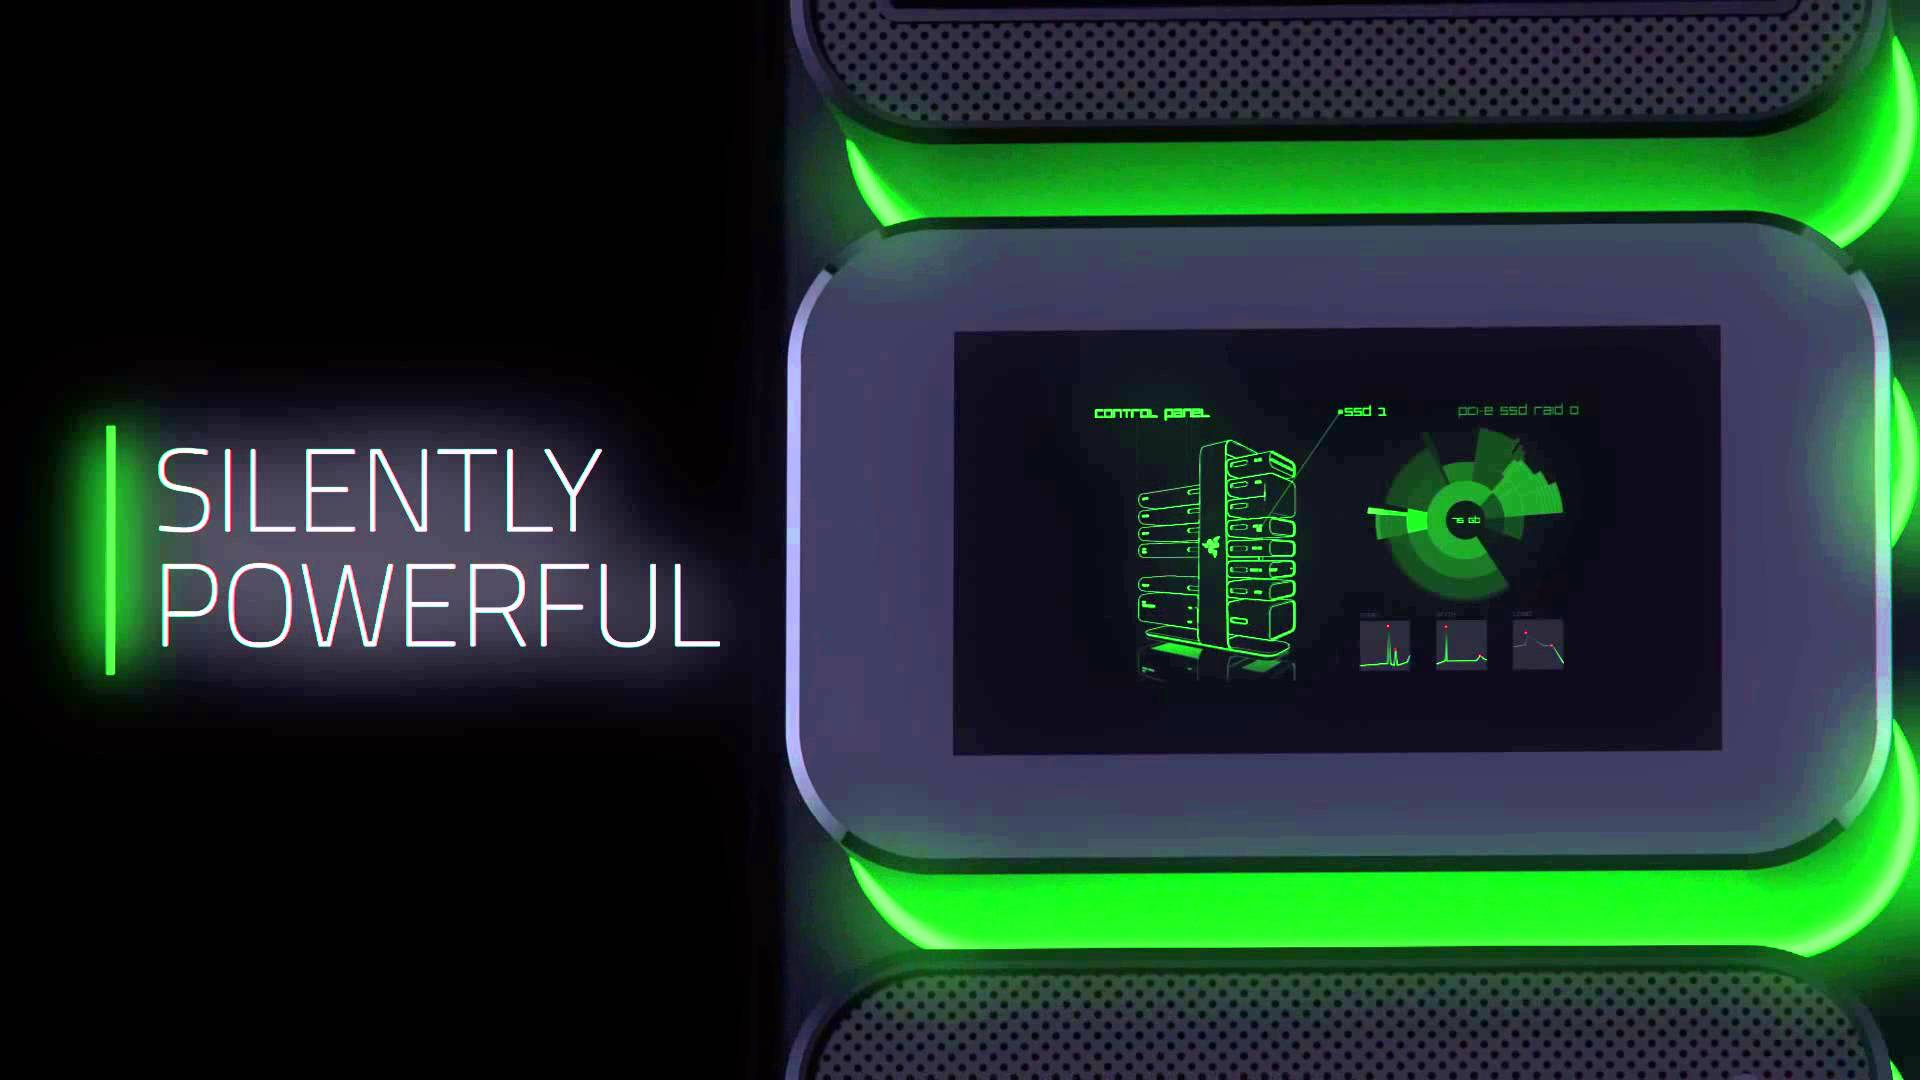 The Modular PC Gaming Rig [Project Christine] and The Forge TV By Razer: Looking Back into The Past and The Present 4